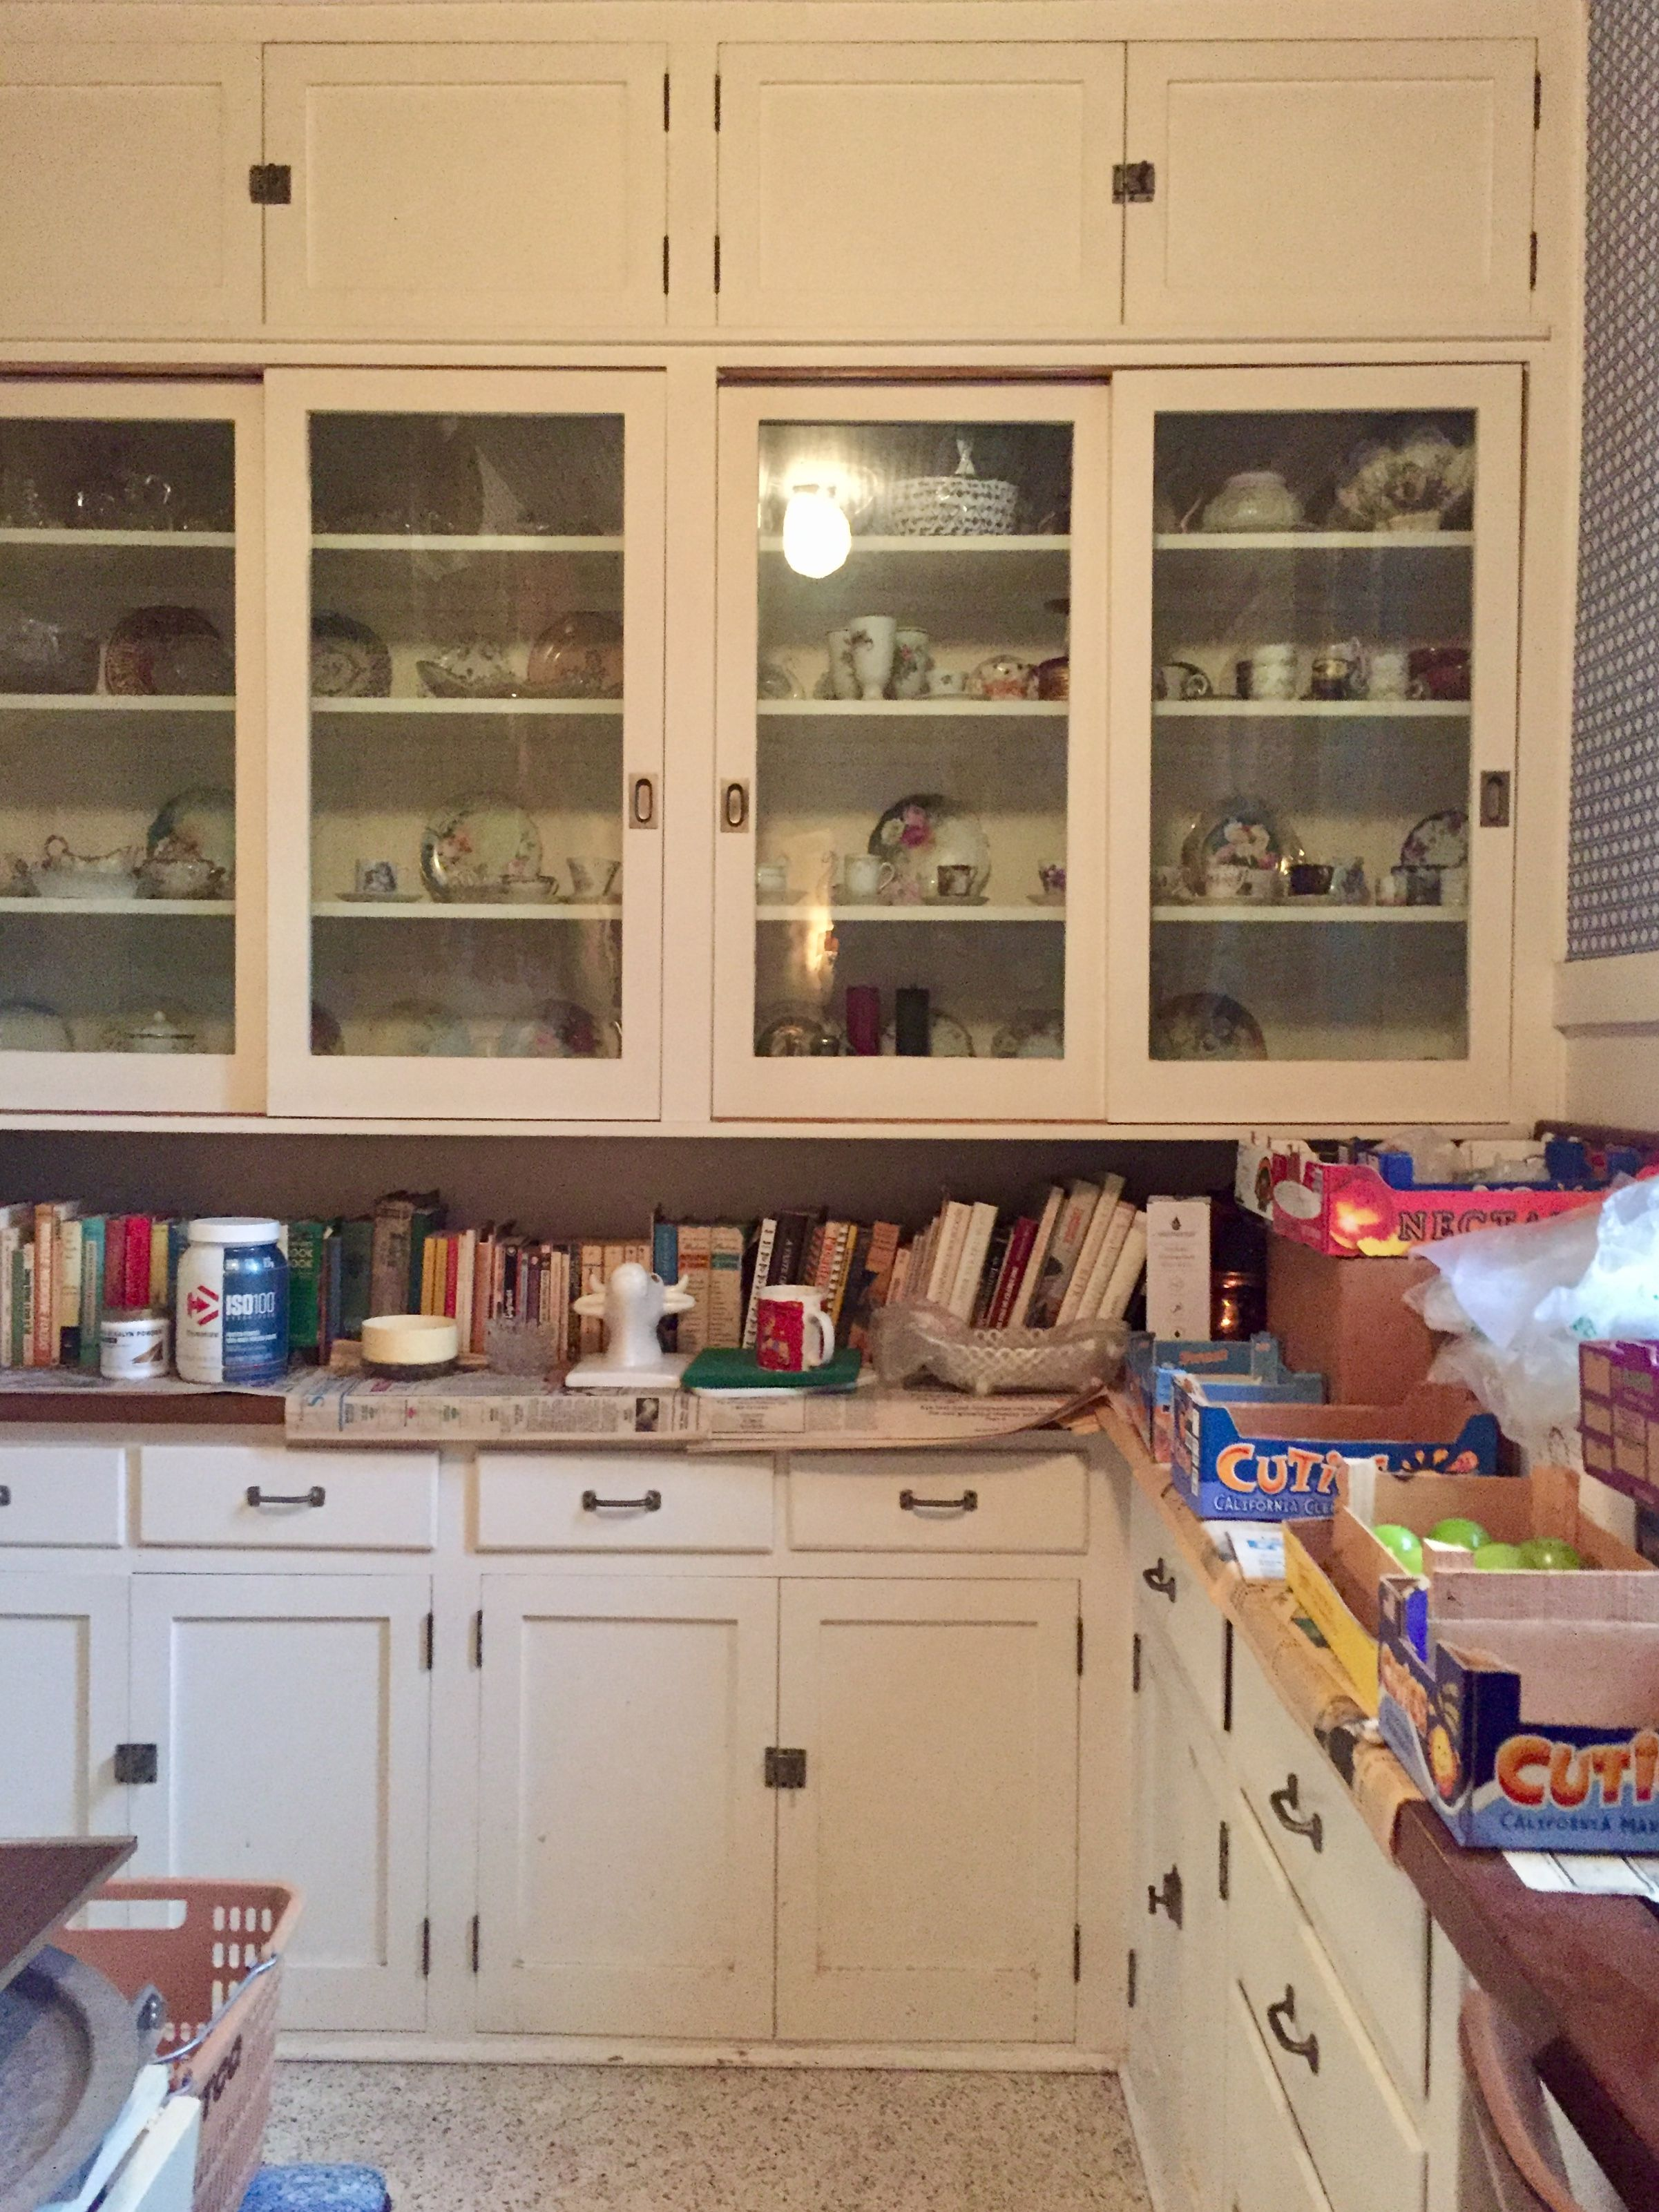 Pin By Brooke On Pasadena Butler S Pantries China Cabinet Kitchen Cabinets Butler Pantry